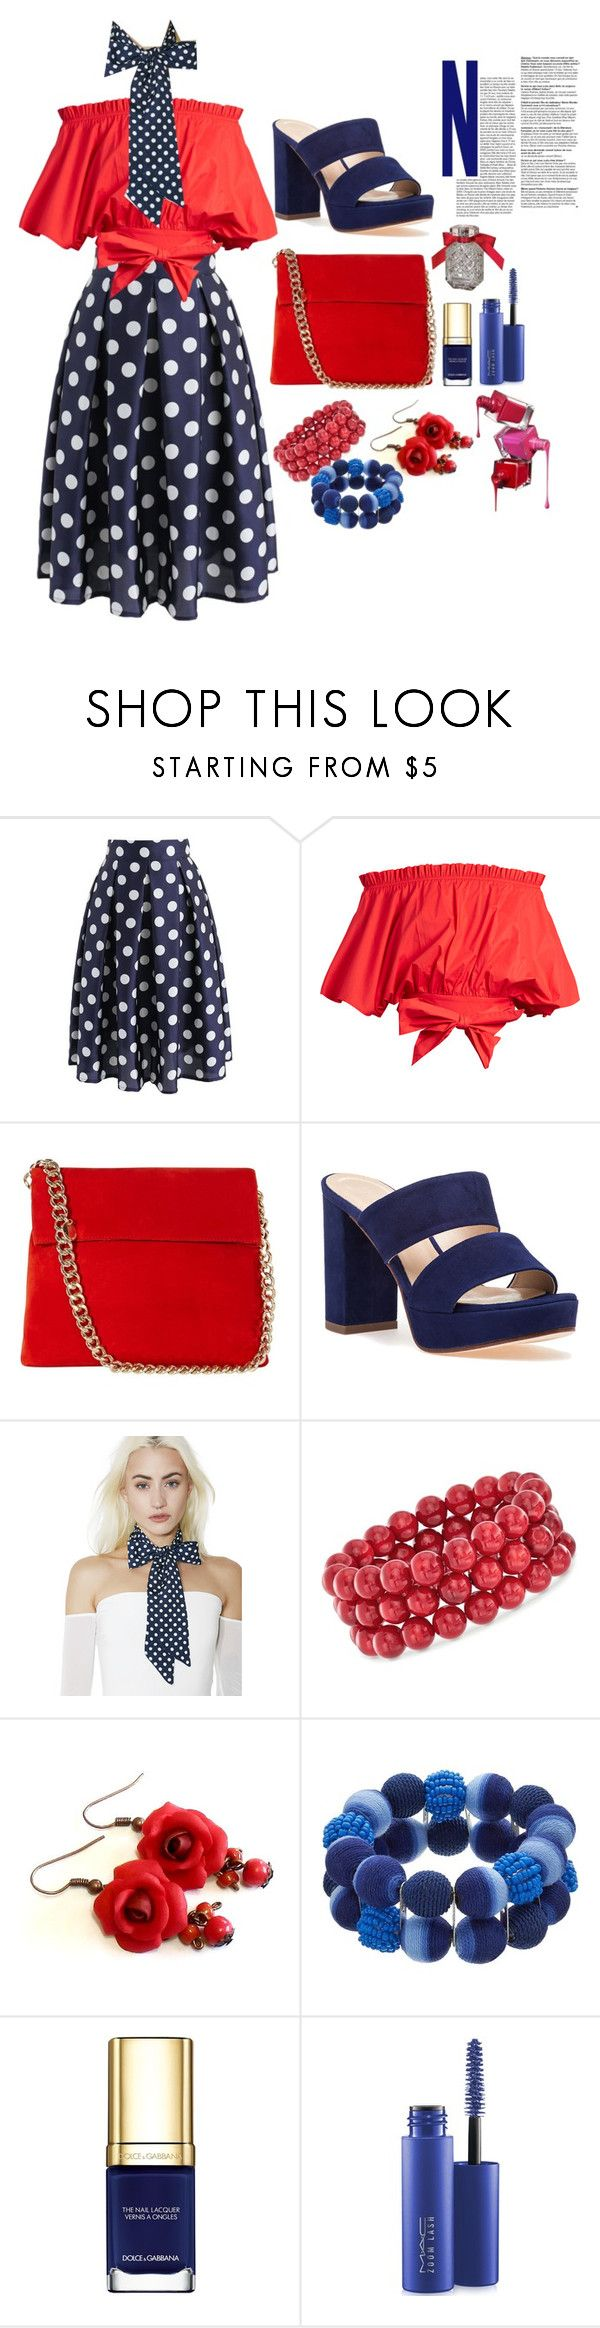 """blue and red"" by loveazerbayjani ❤ liked on Polyvore featuring Chicwish, Saloni, Karen Millen, 275 Central, Ross-Simons, Dolce&Gabbana, MAC Cosmetics and Victoria's Secret"